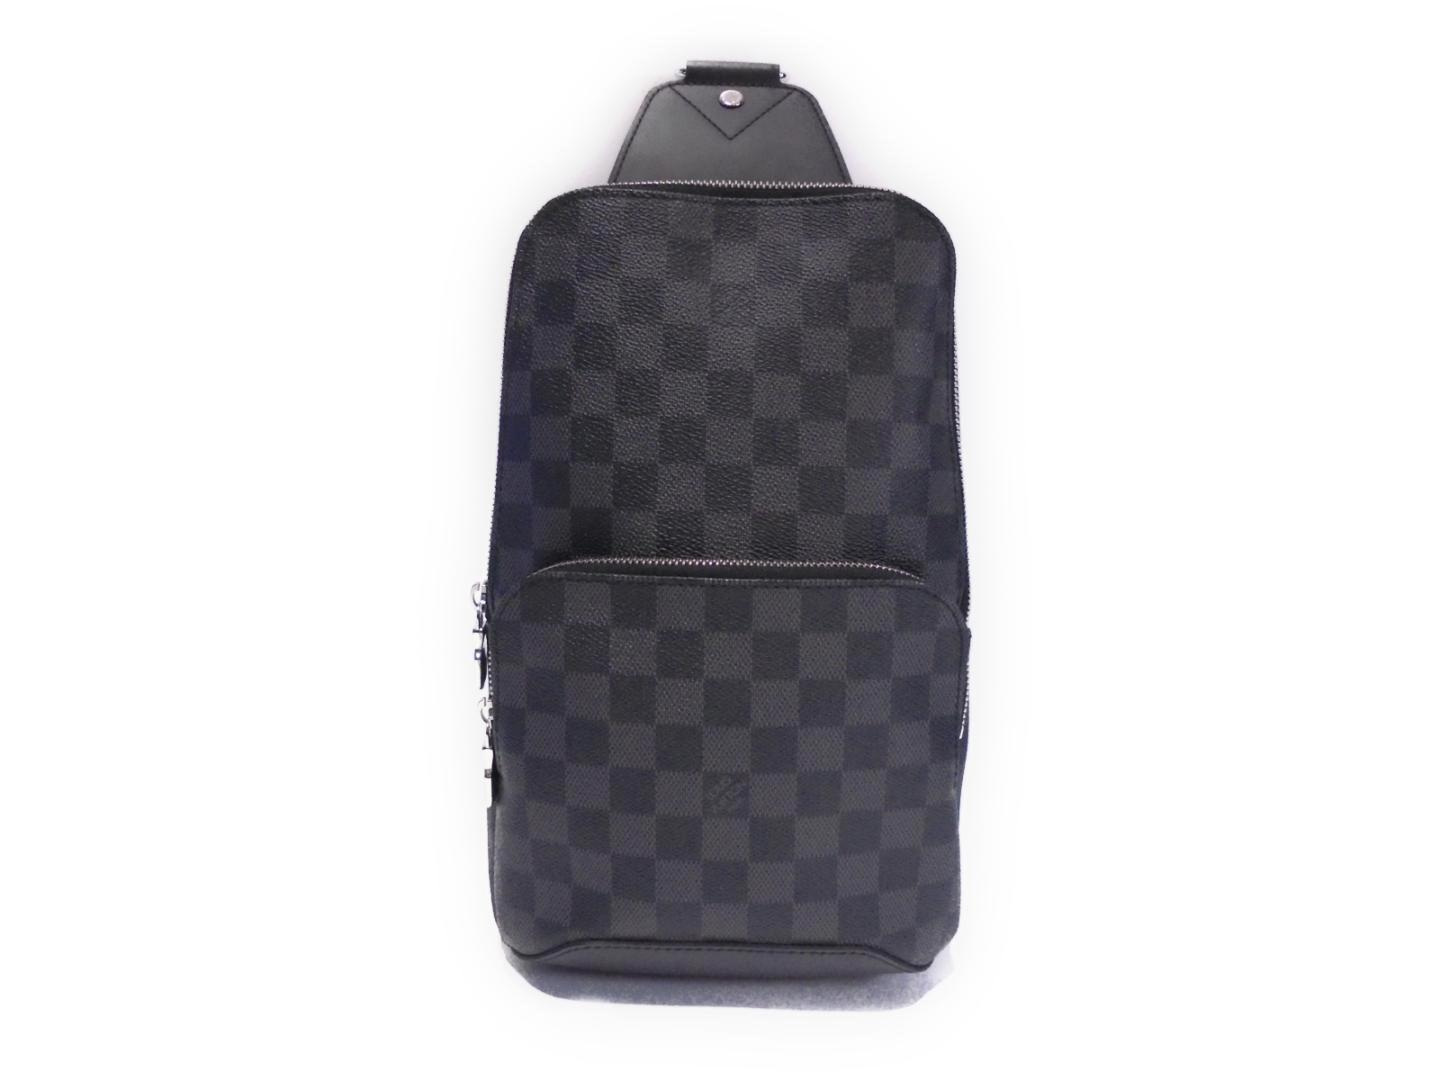 adf86cc0c4f9 Lyst - Louis Vuitton Avenue Sling Bag Cross Body Damier Graphite ...